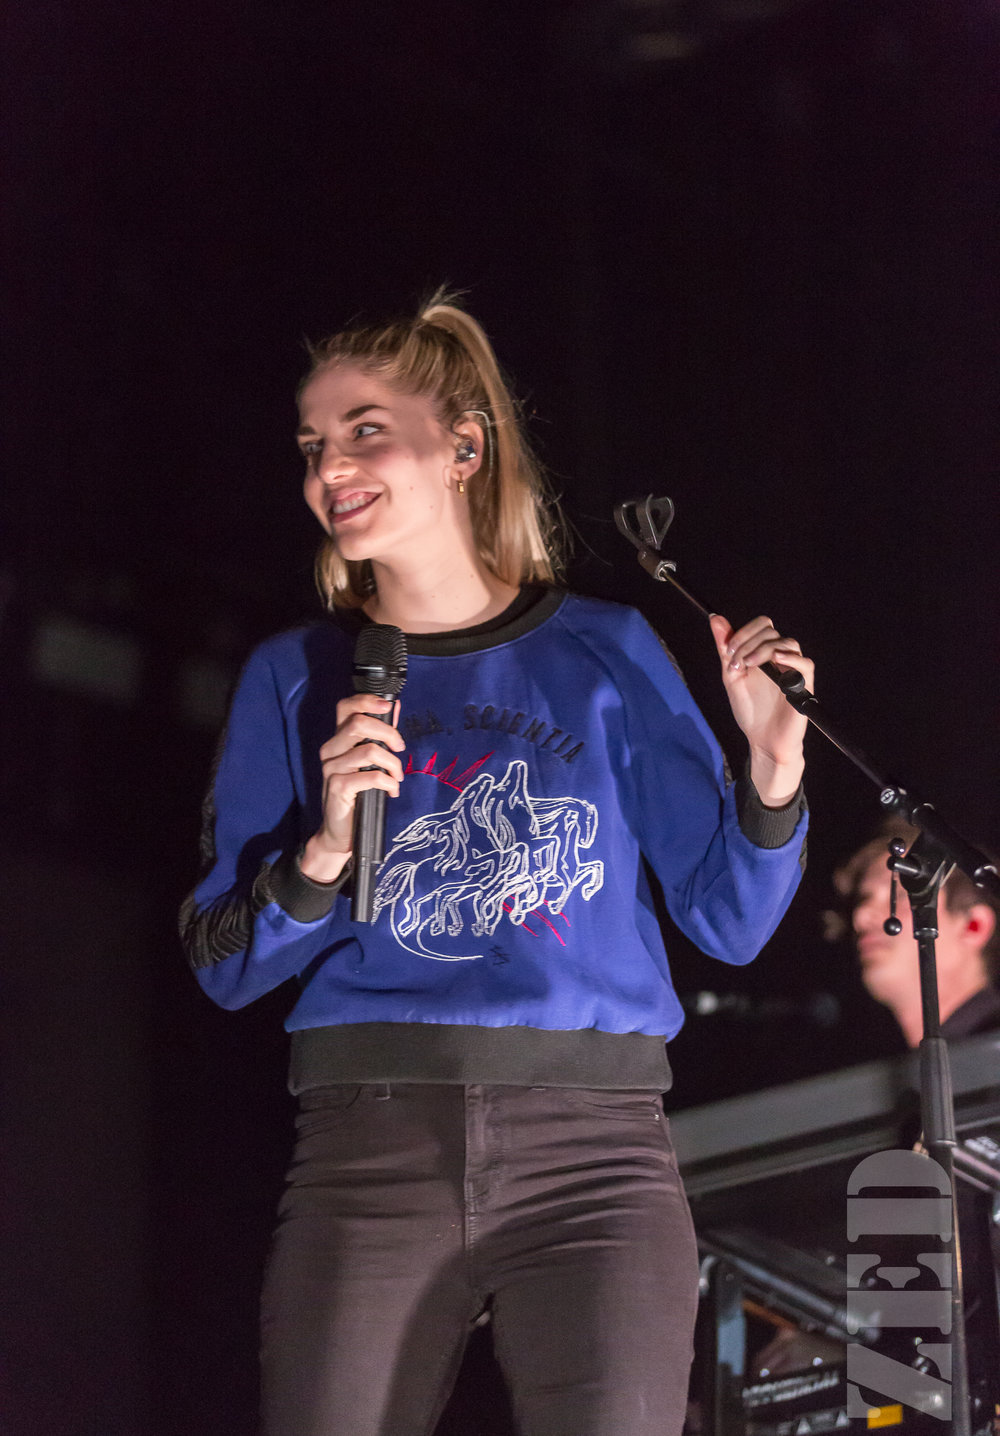 30Sep17, London Grammar, Spark Arena 5.jpg